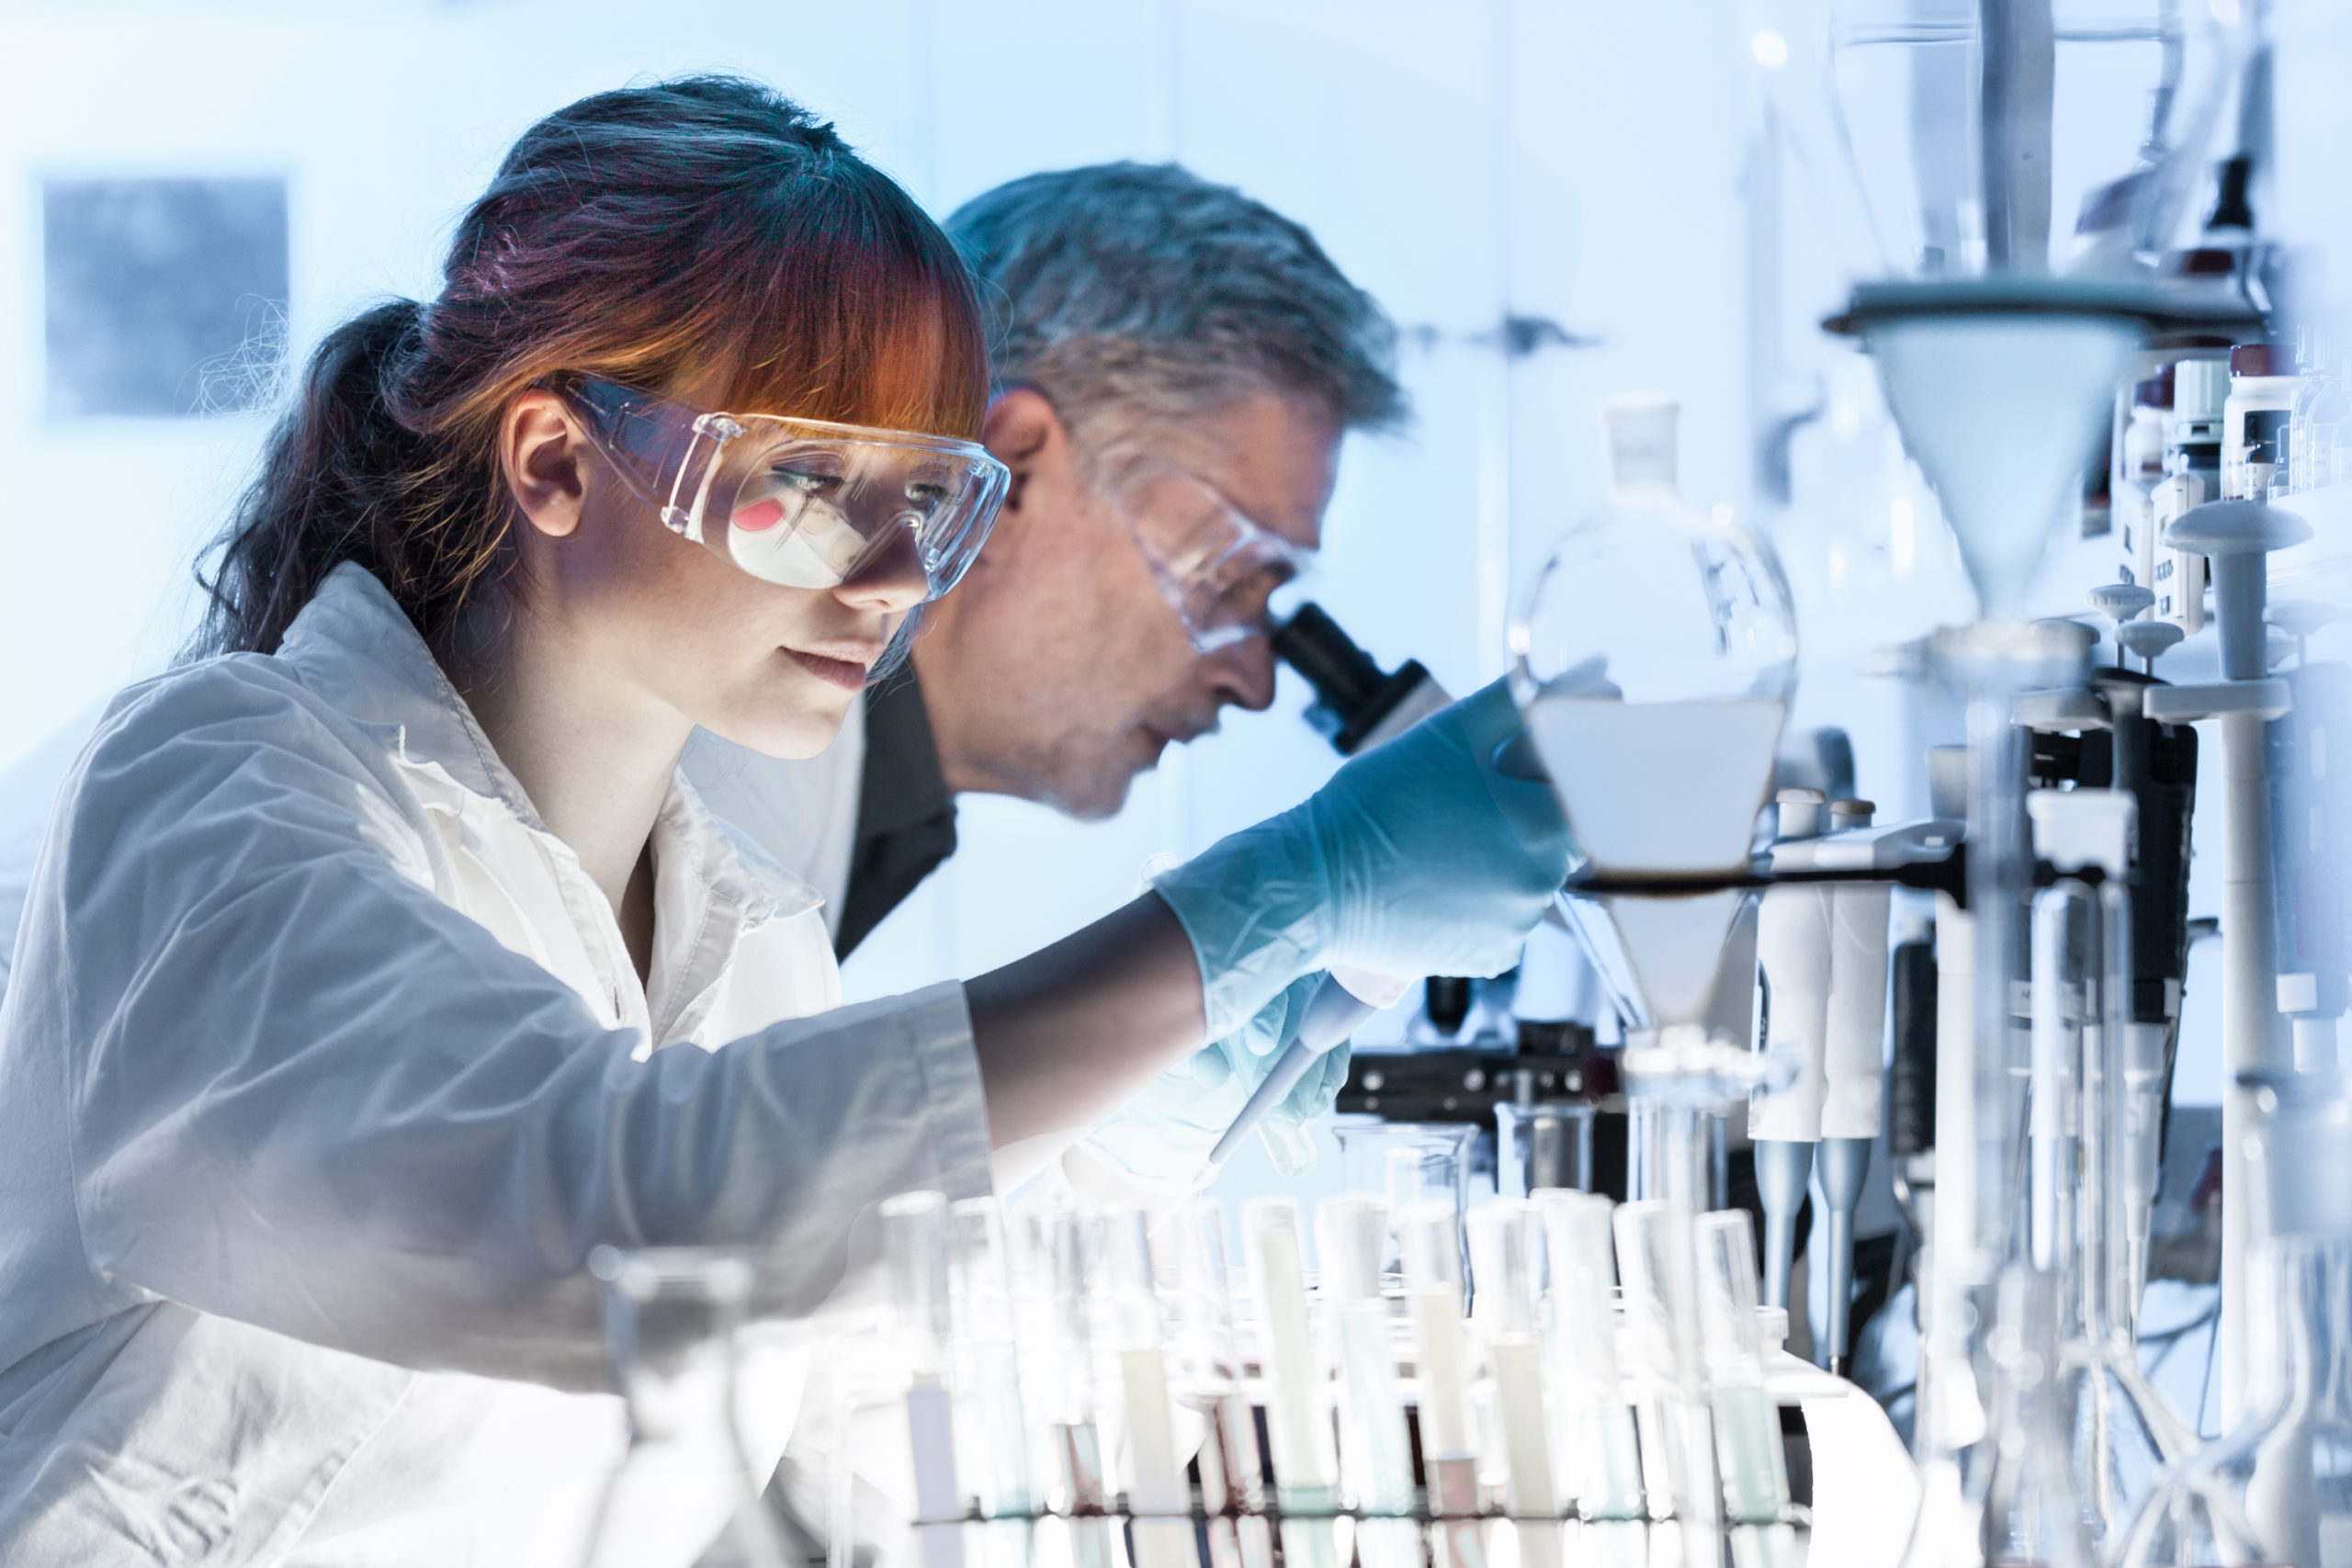 Woman and man wearing lab coats using microscopes in a lab